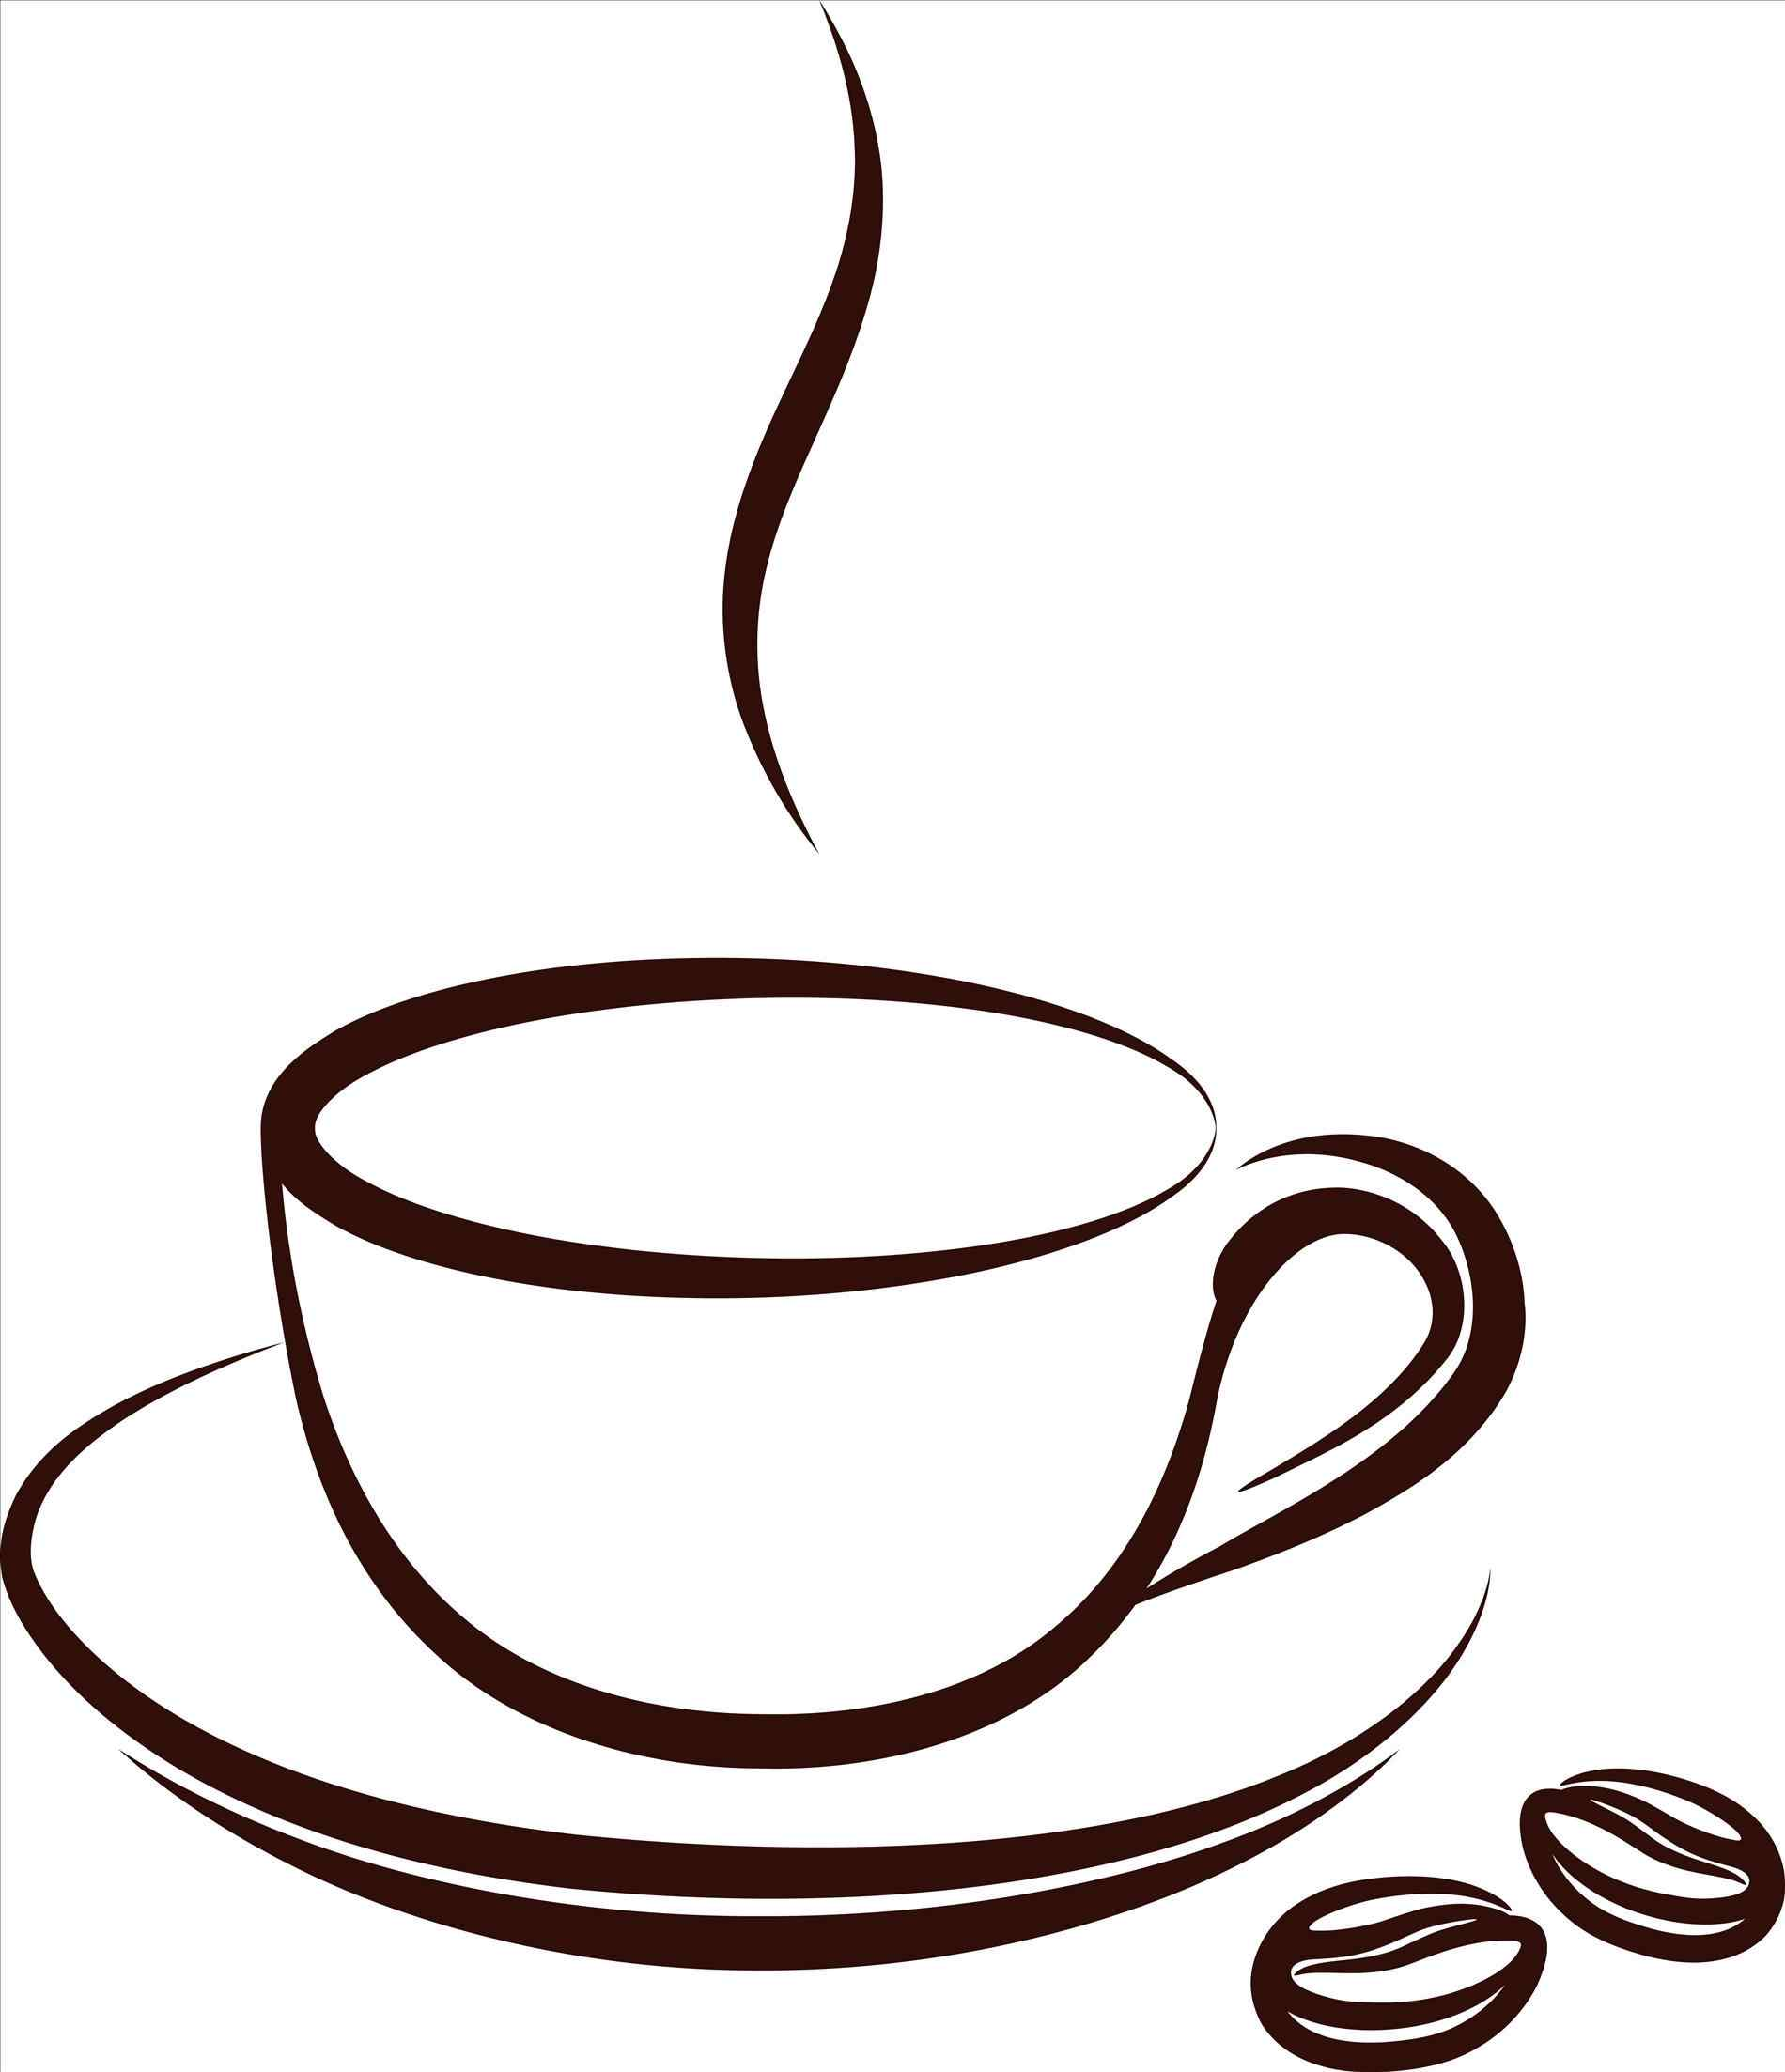 coffee clipart at getdrawings com free for personal use coffee rh getdrawings com free clipart coffee cup free clip art coffee mug